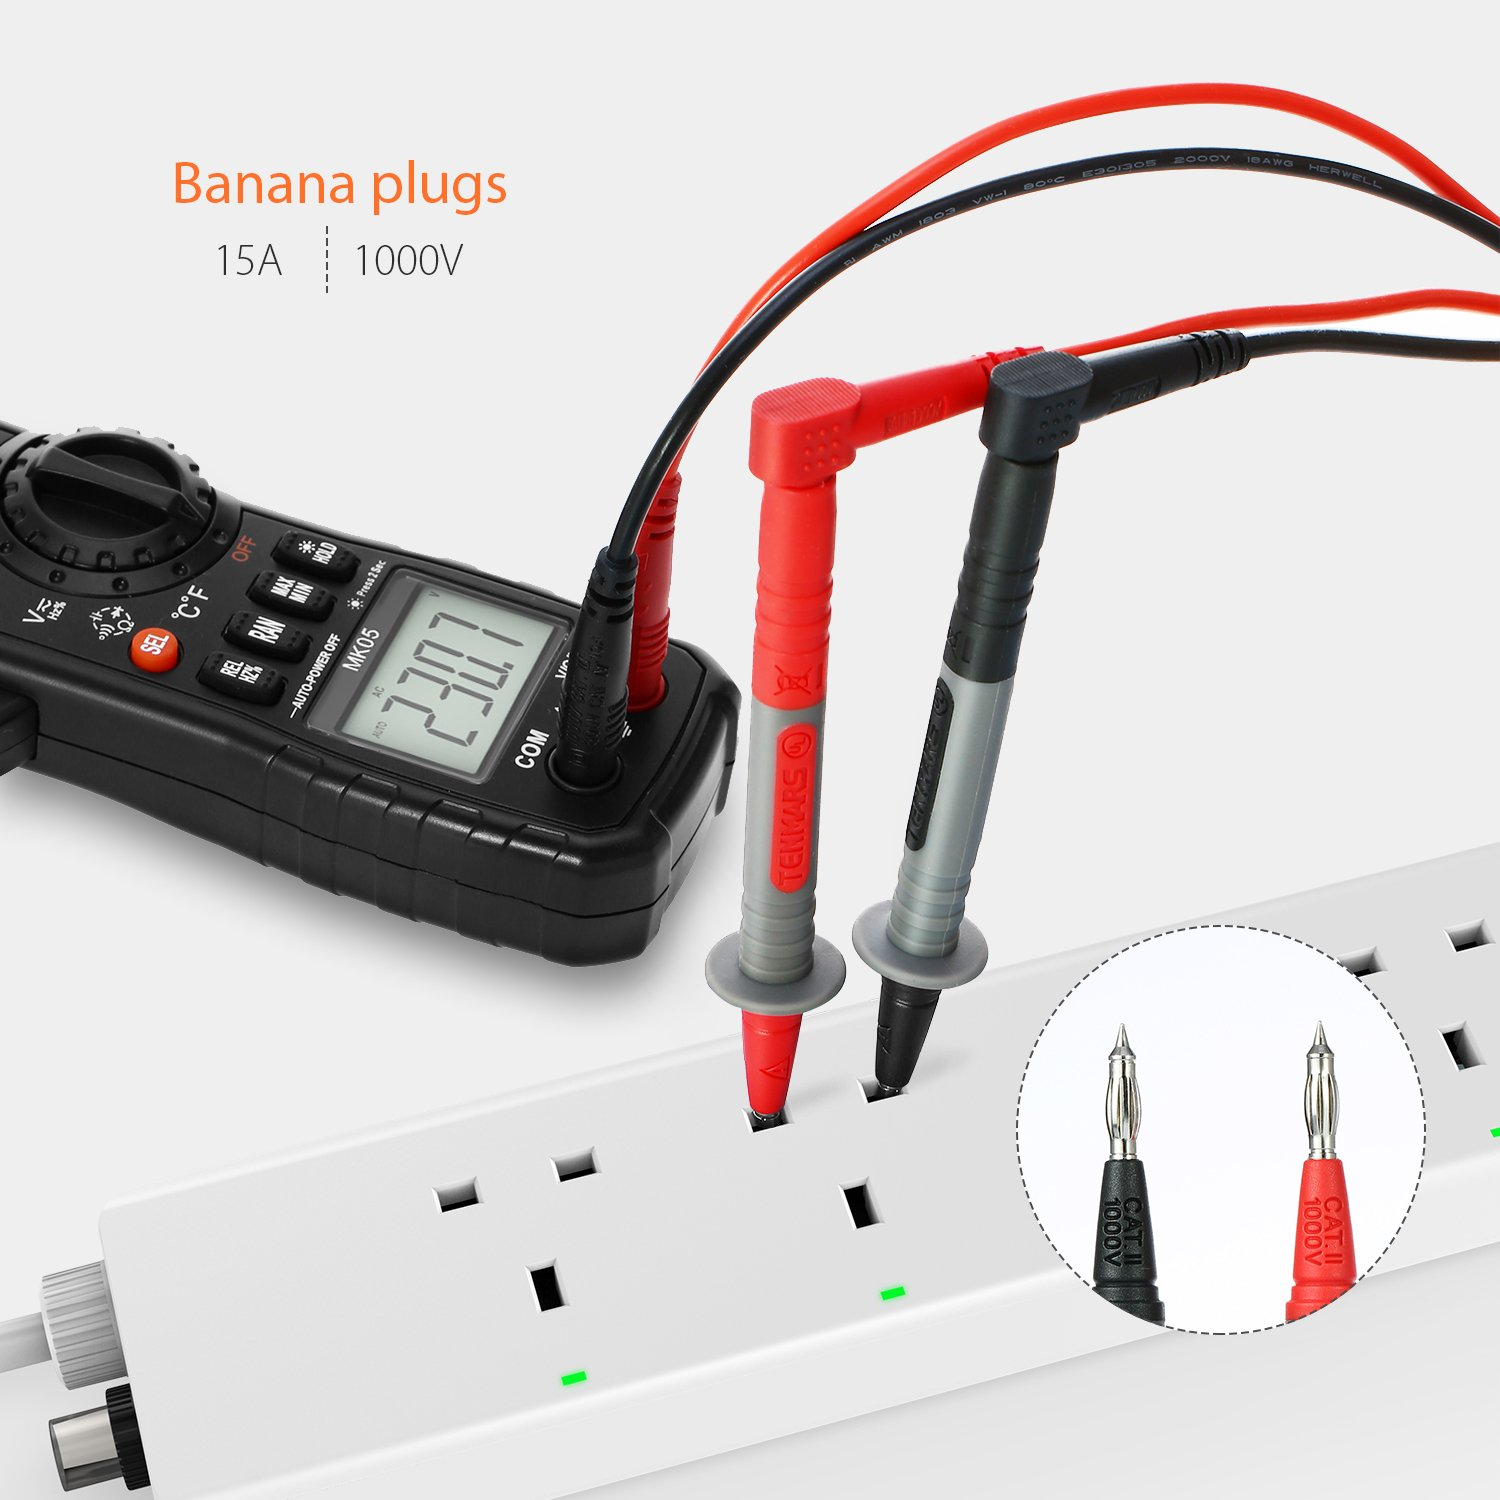 Test Lead Kitsmeterk 9pcs Electronic Multimeter With Alligator Remote Control Toy Car Transmitter Circuit Automotivecircuit Clips Replaceable Probes Tips Accessories Kit For Dmm Digital Multi Meter Clamp